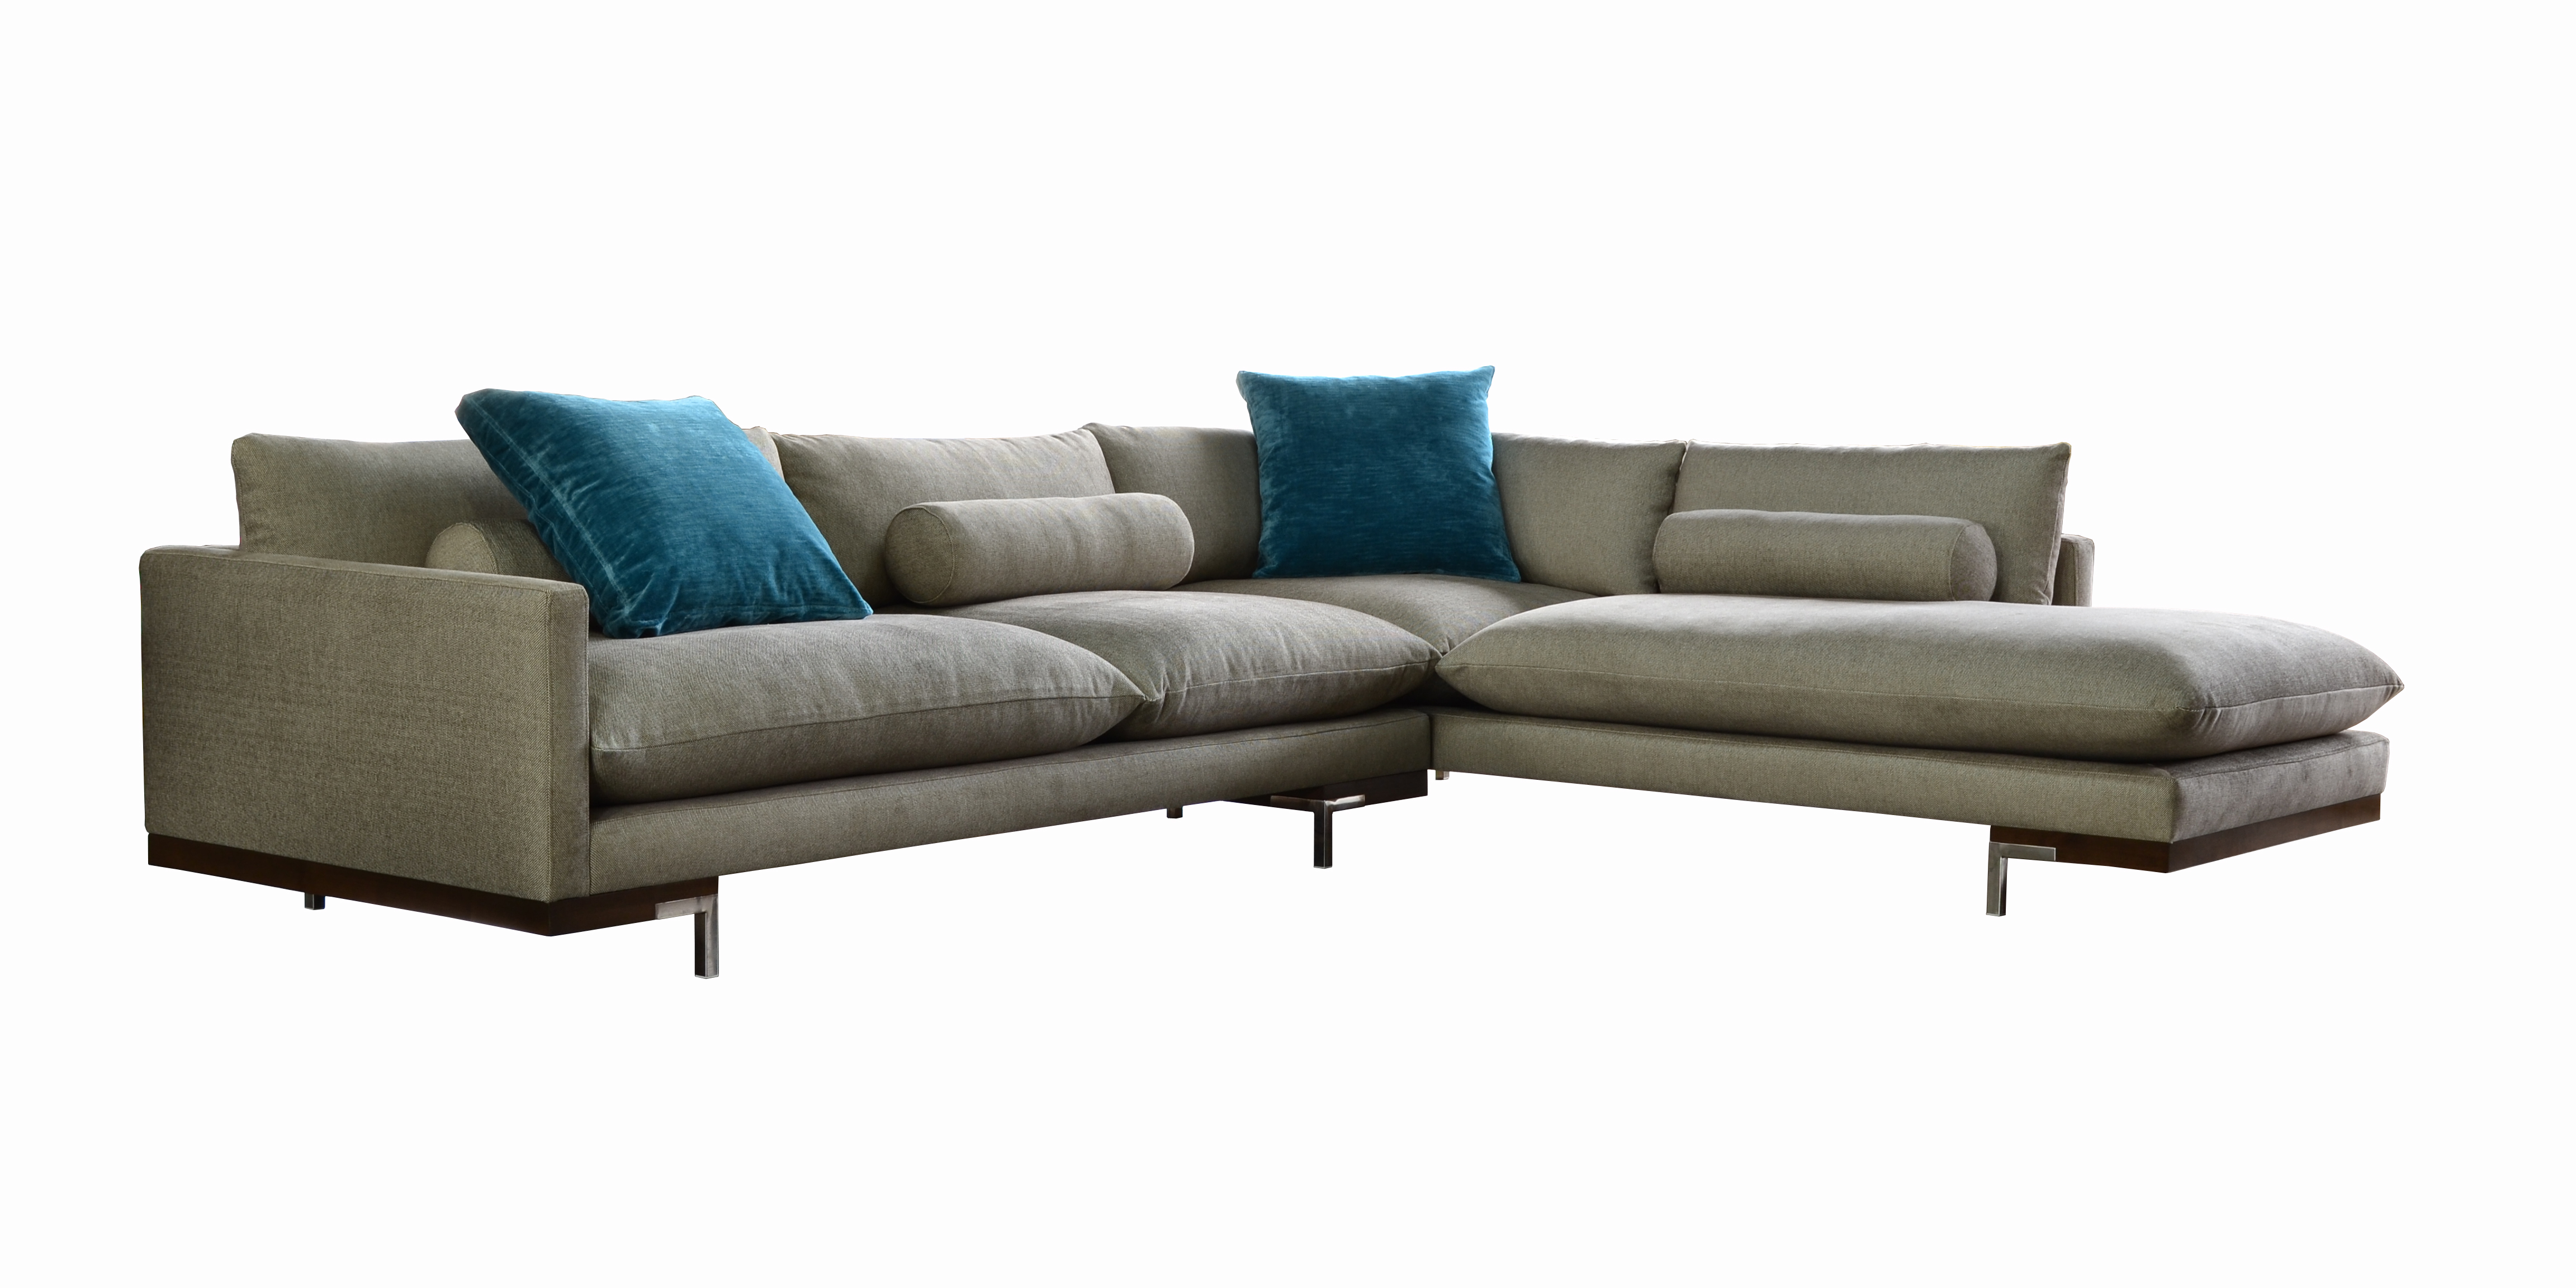 Bonn sectional sofa with blue pillows from Nathan Anthony